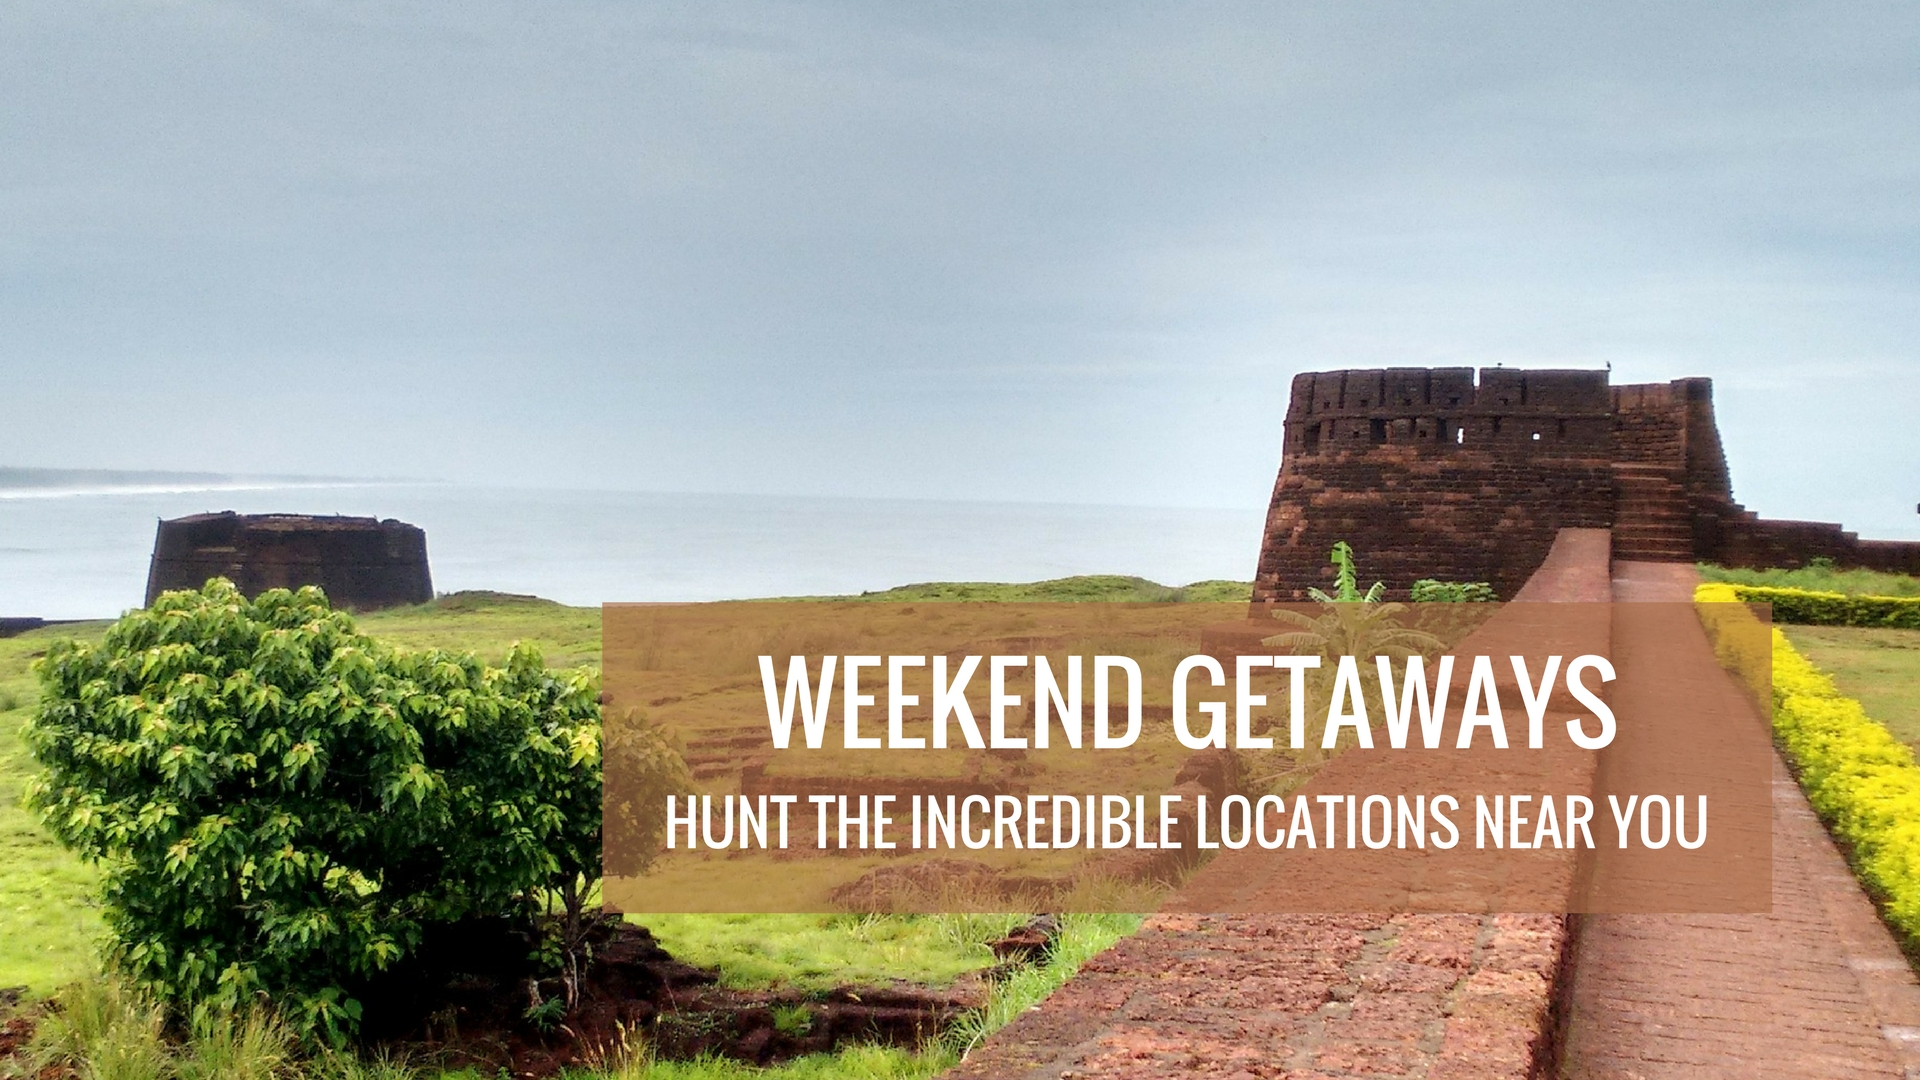 Weekend Gateways in India